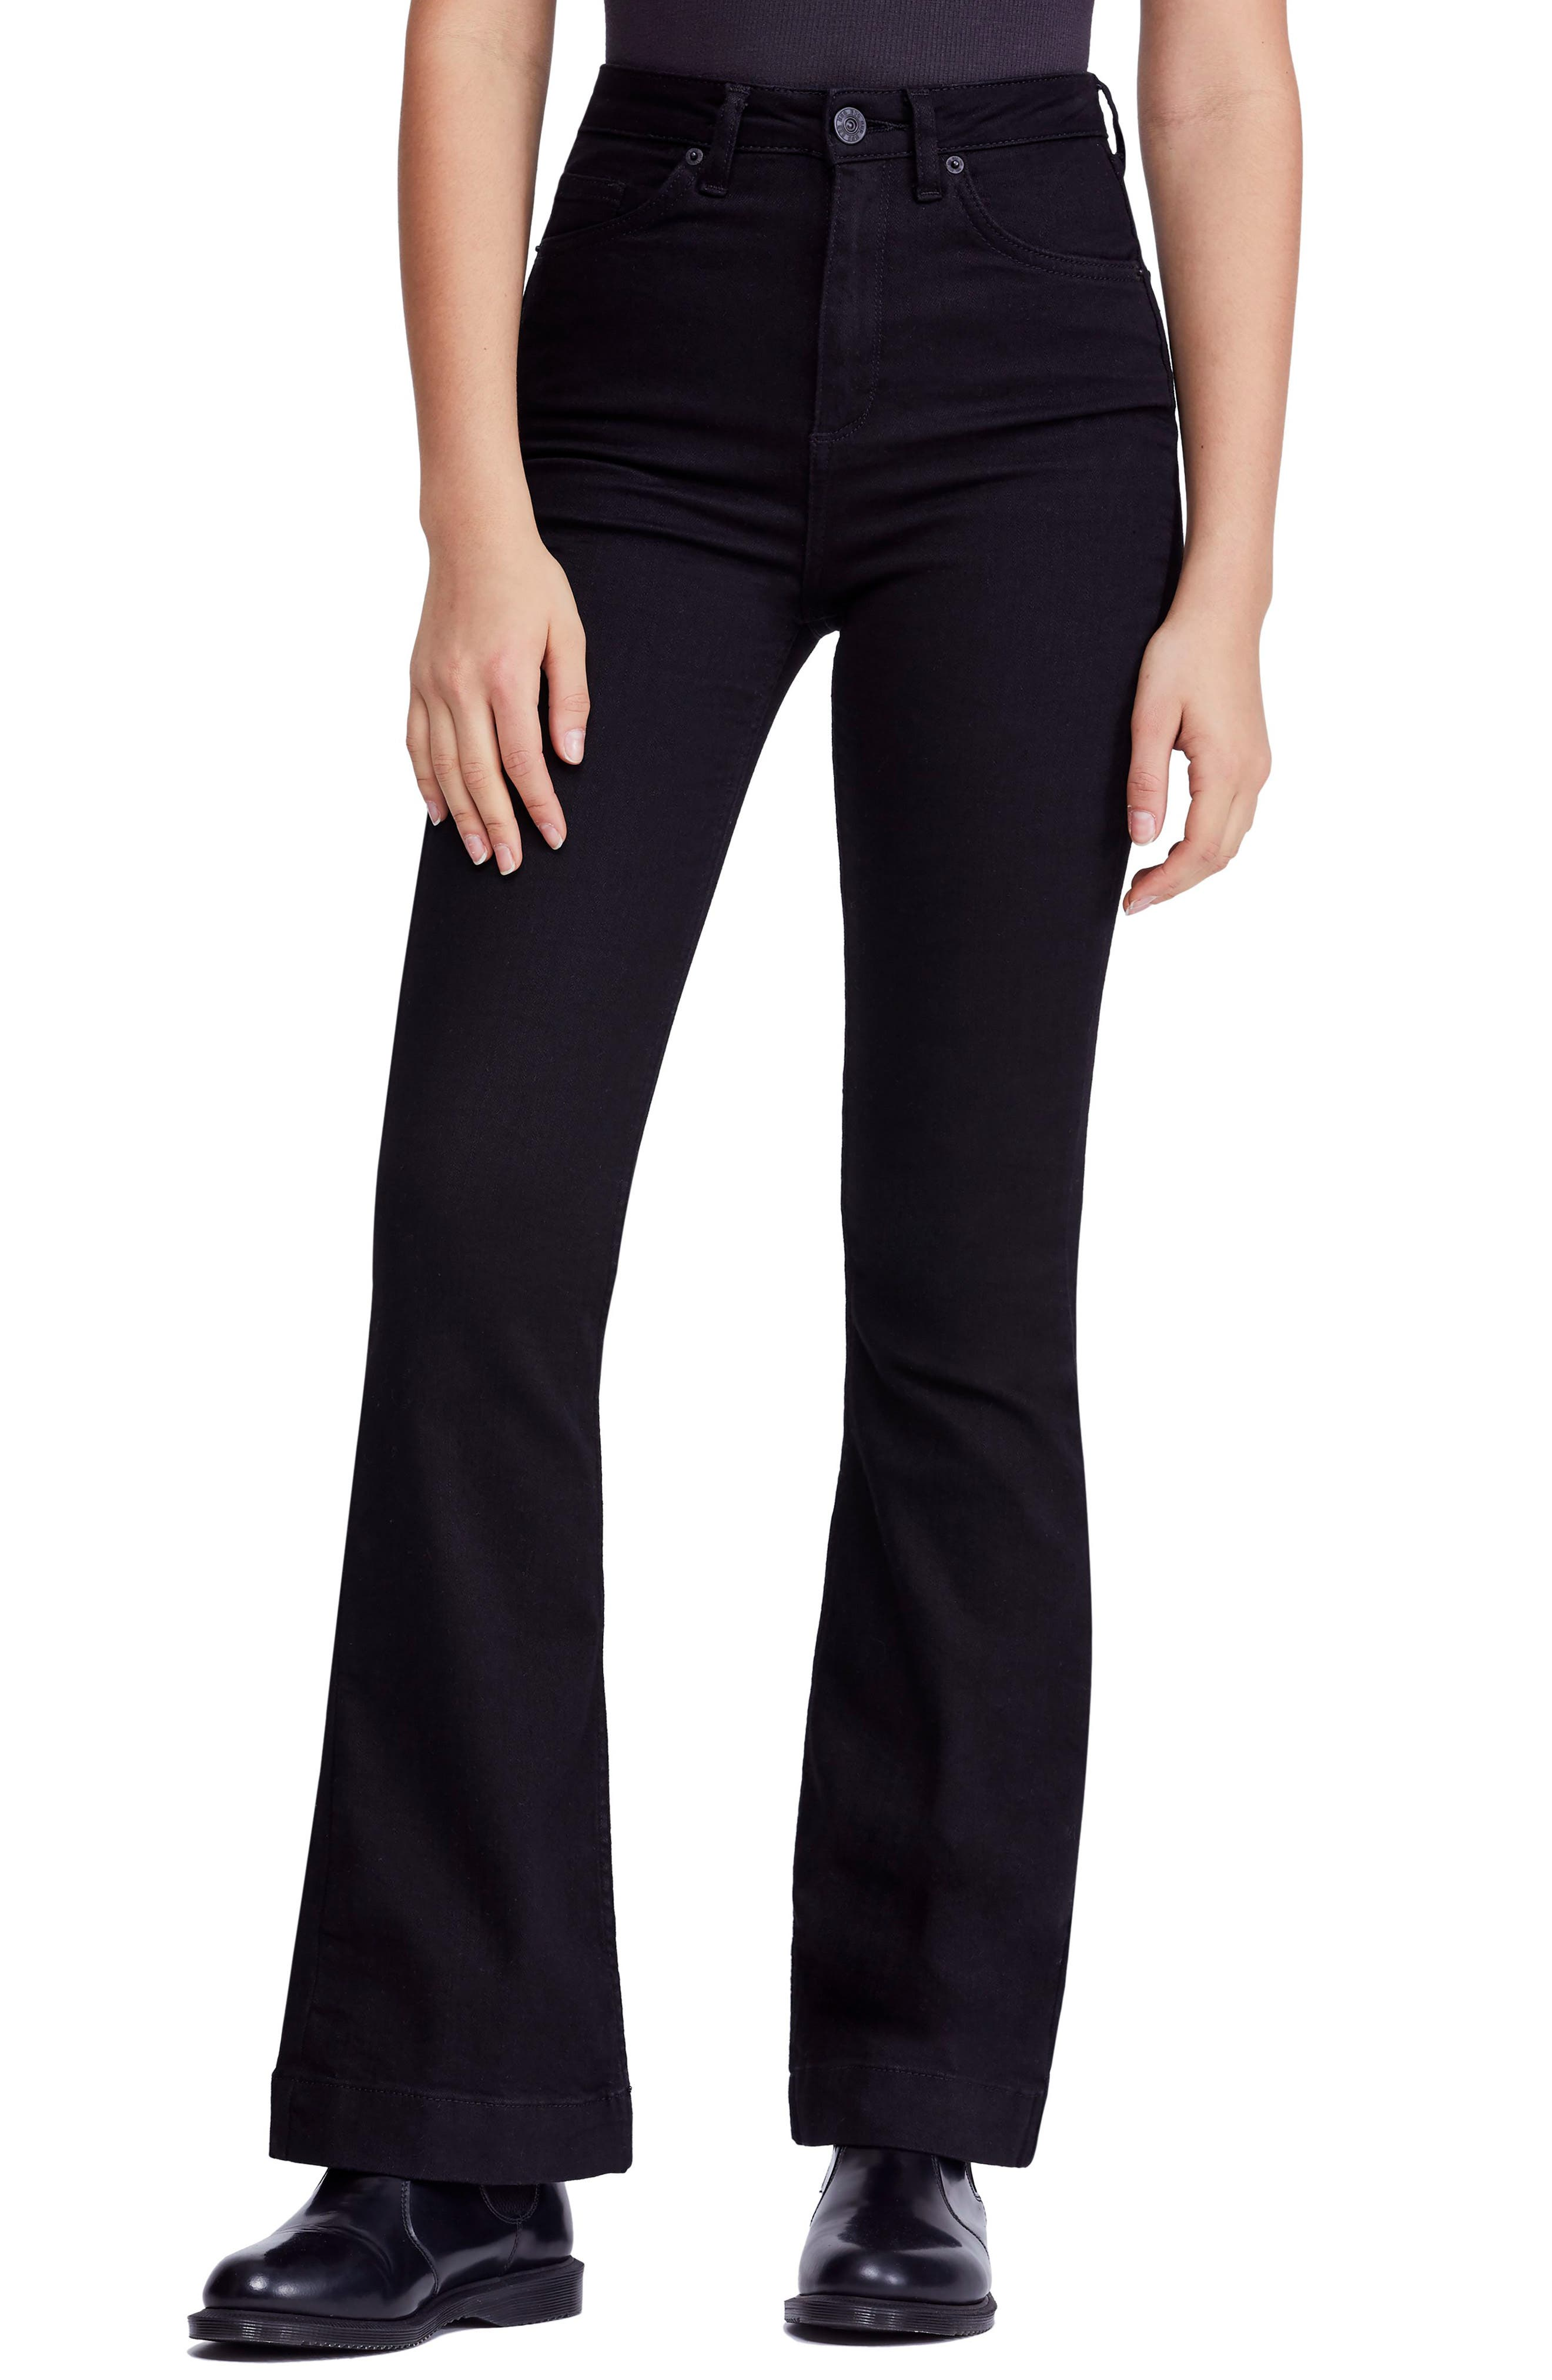 Vintage High Waisted Trousers, Sailor Pants, Jeans Womens Bdg Urban Outfitters High Waist Flare Jeans $41.40 AT vintagedancer.com